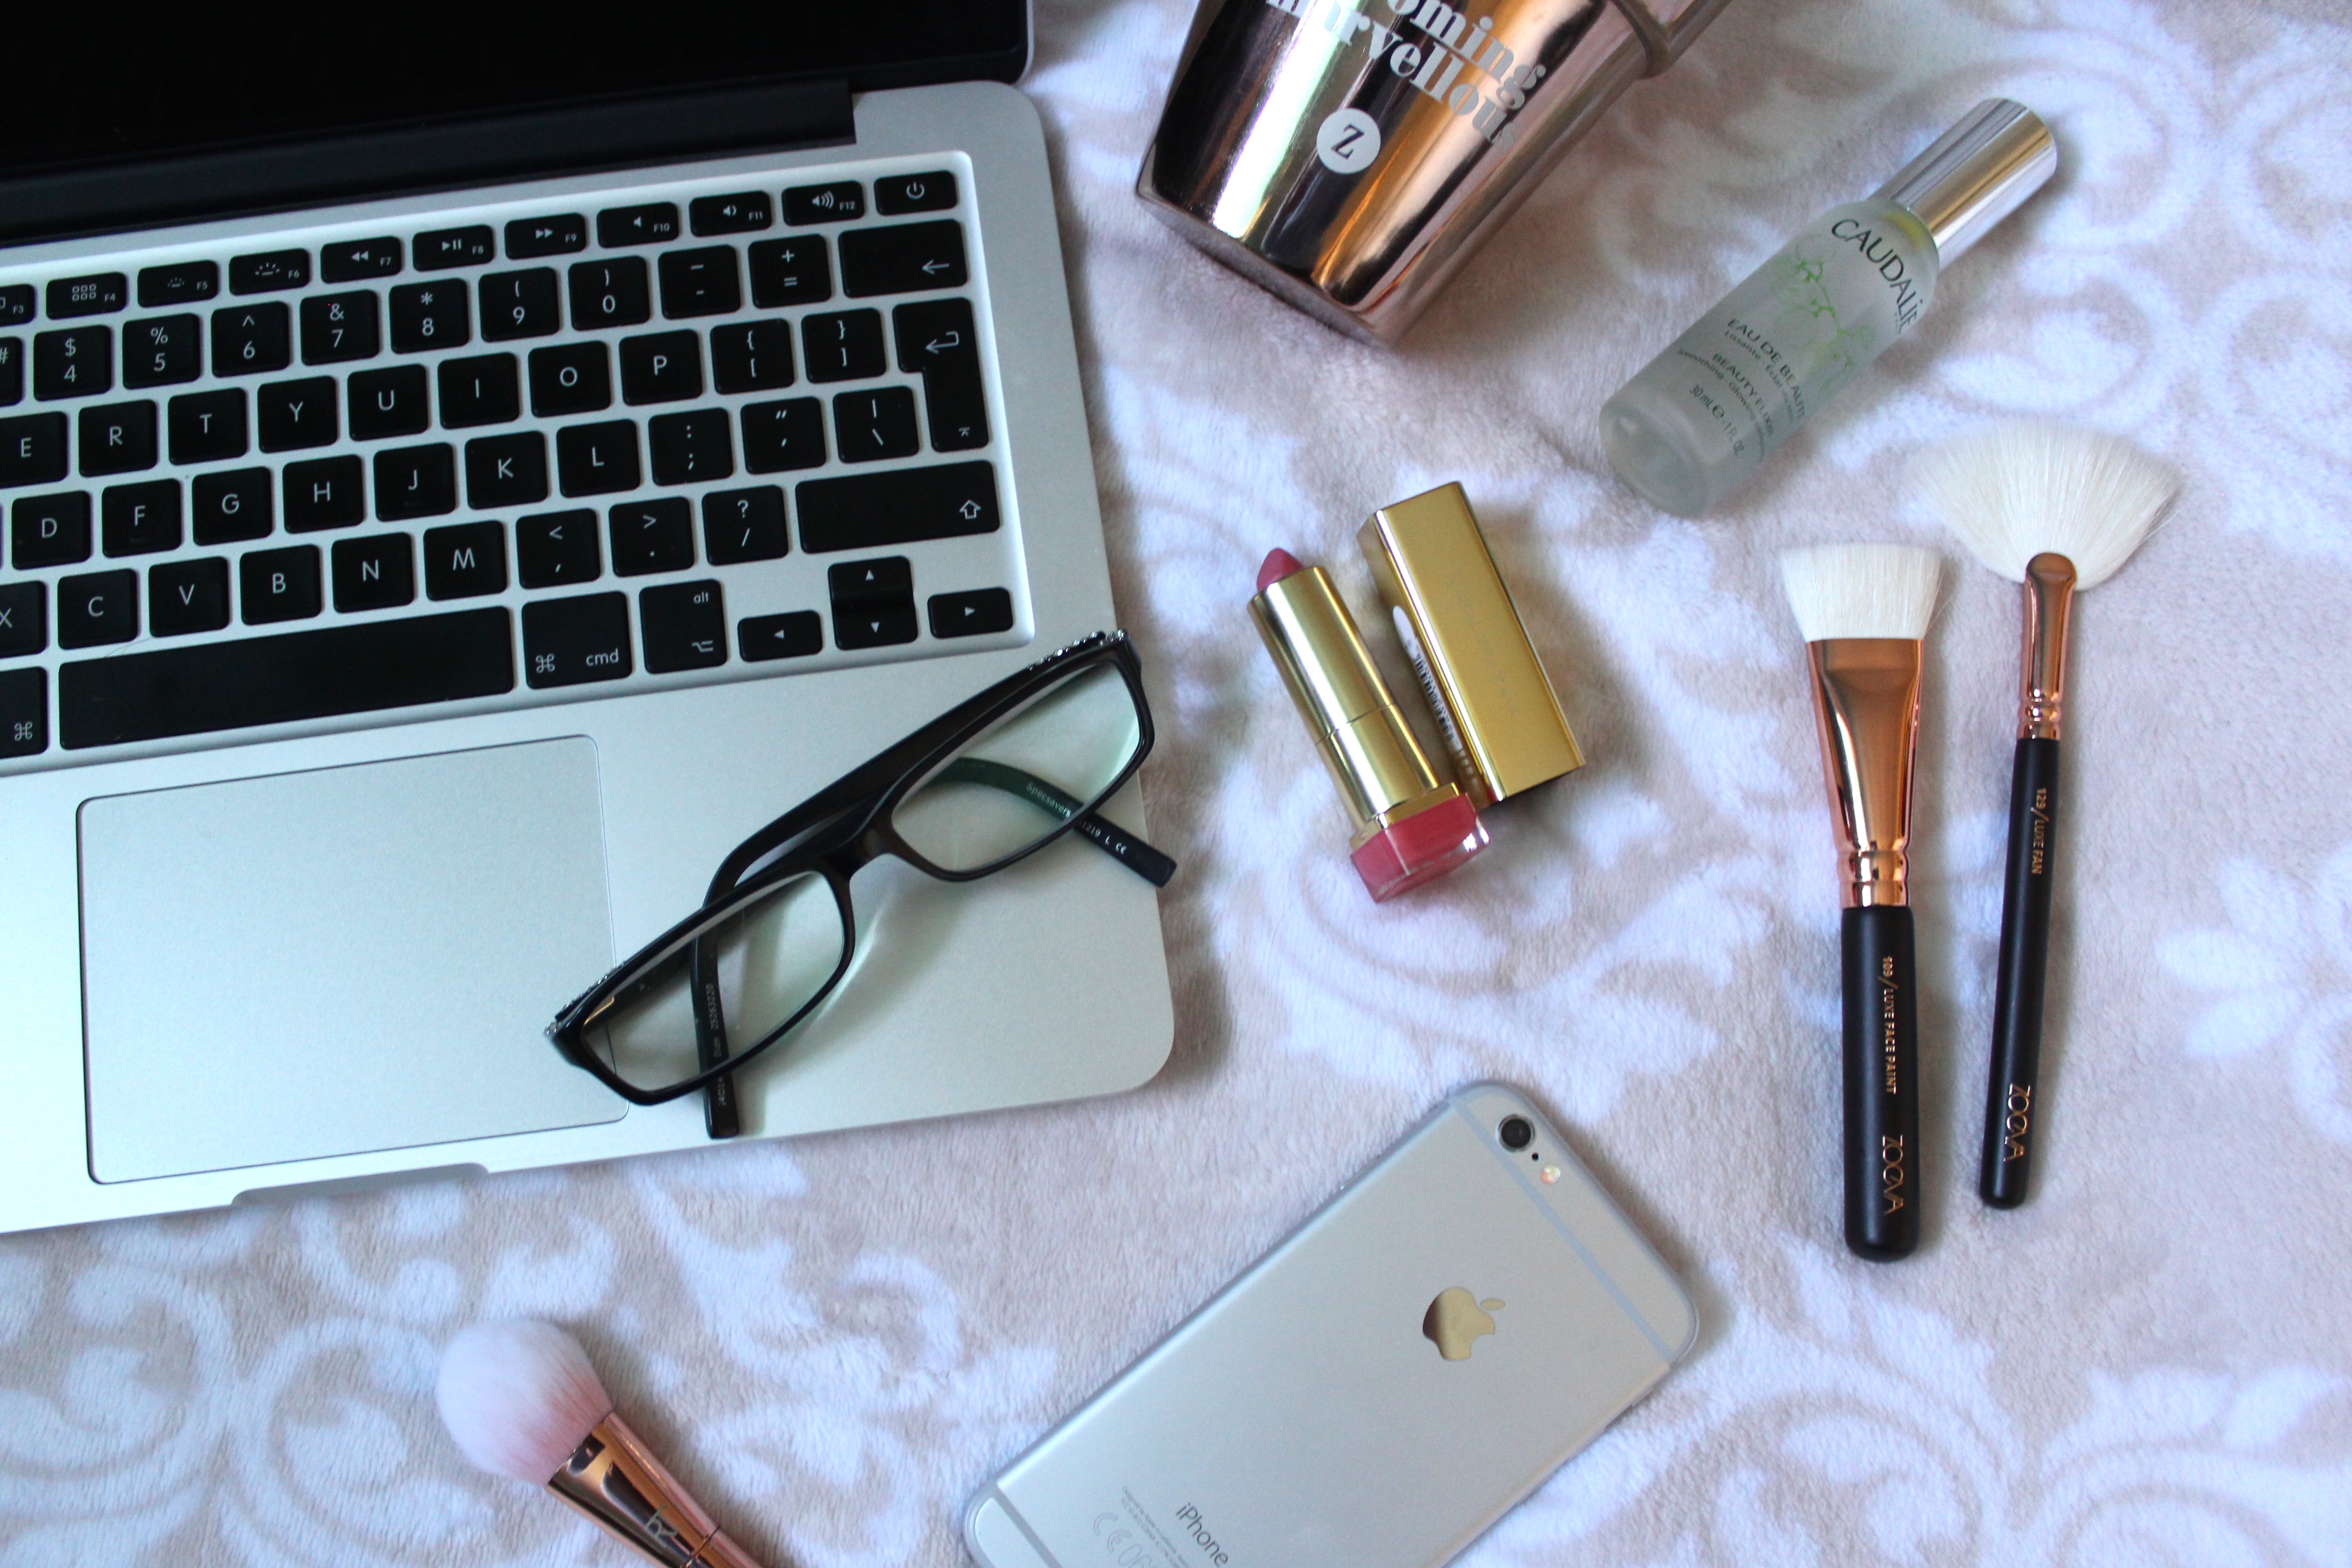 How to tell people about your blog - an image of a macbook, iphone, a few makeup brushes and a lipstick